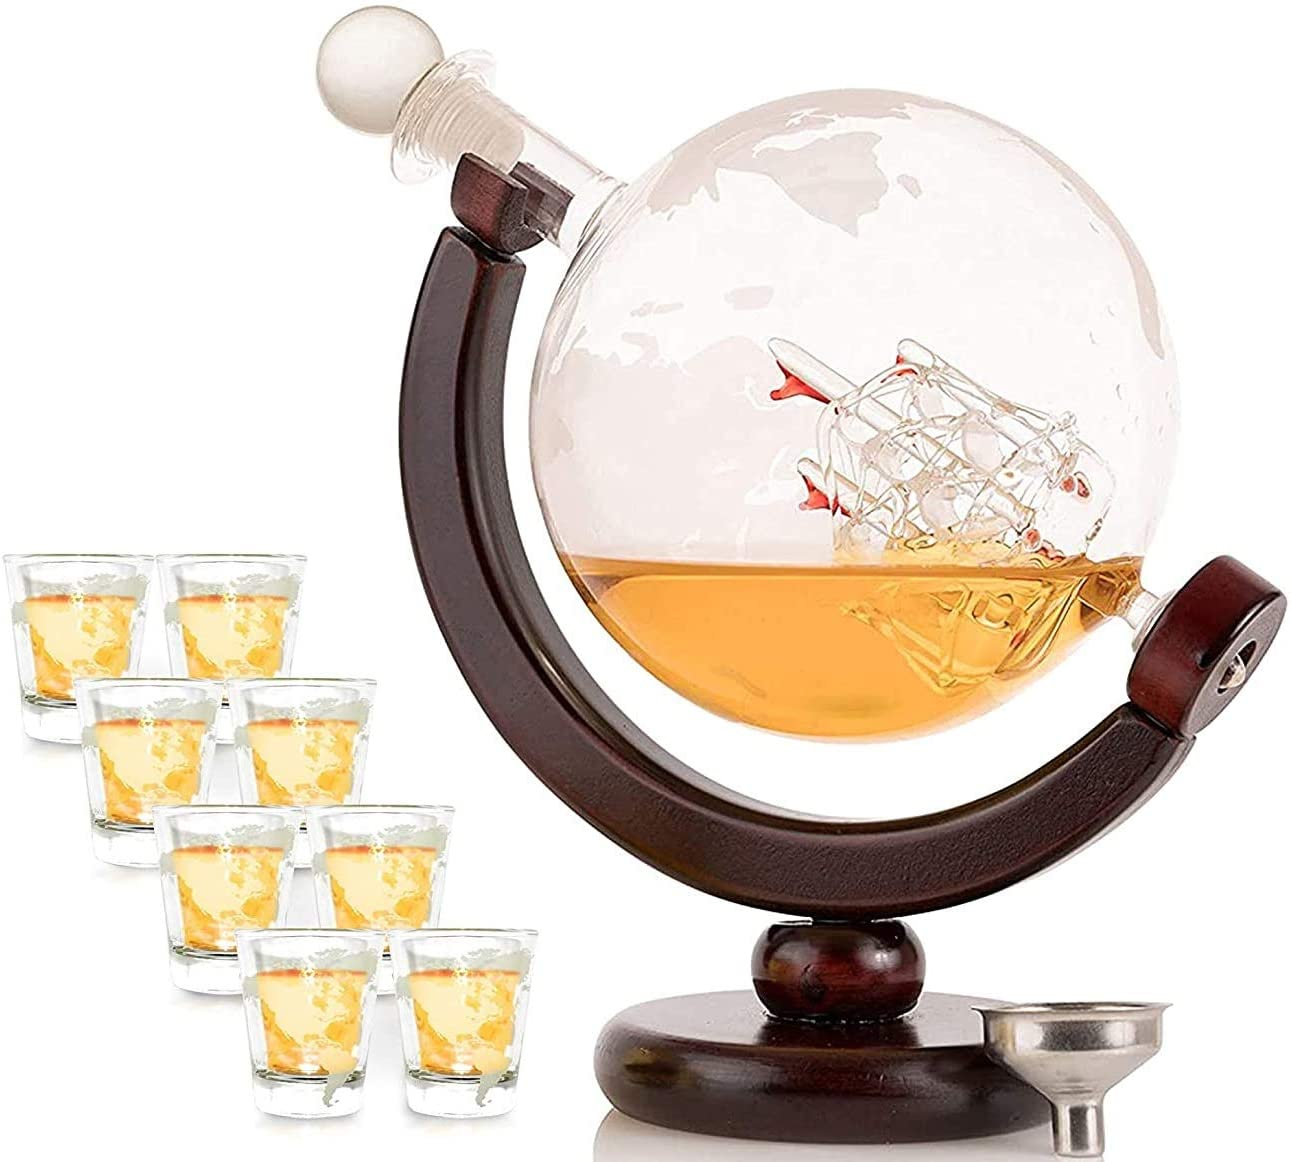 OLIVIA AIDEN Cheap Whiskey Decanter Globe 8 Shot Large with Glasses Sale SALE% OFF